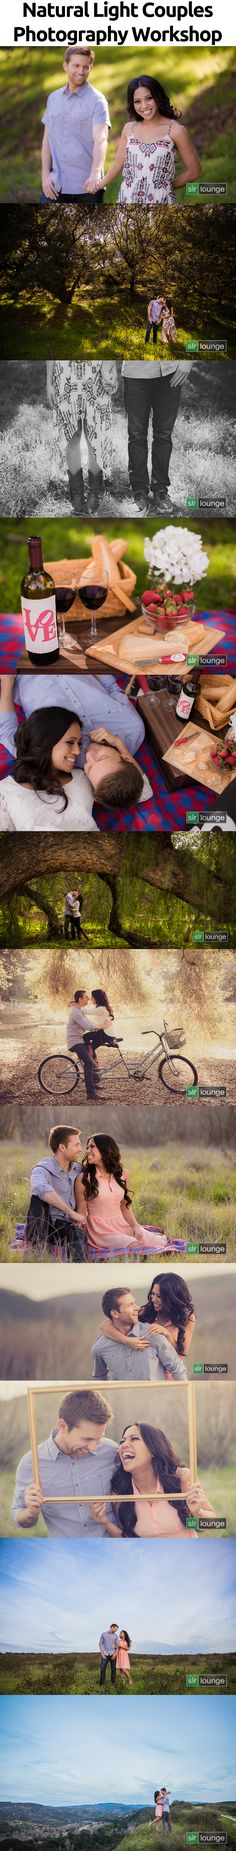 Review: Natural Light Couples Photography Workshop by SLR Lounge